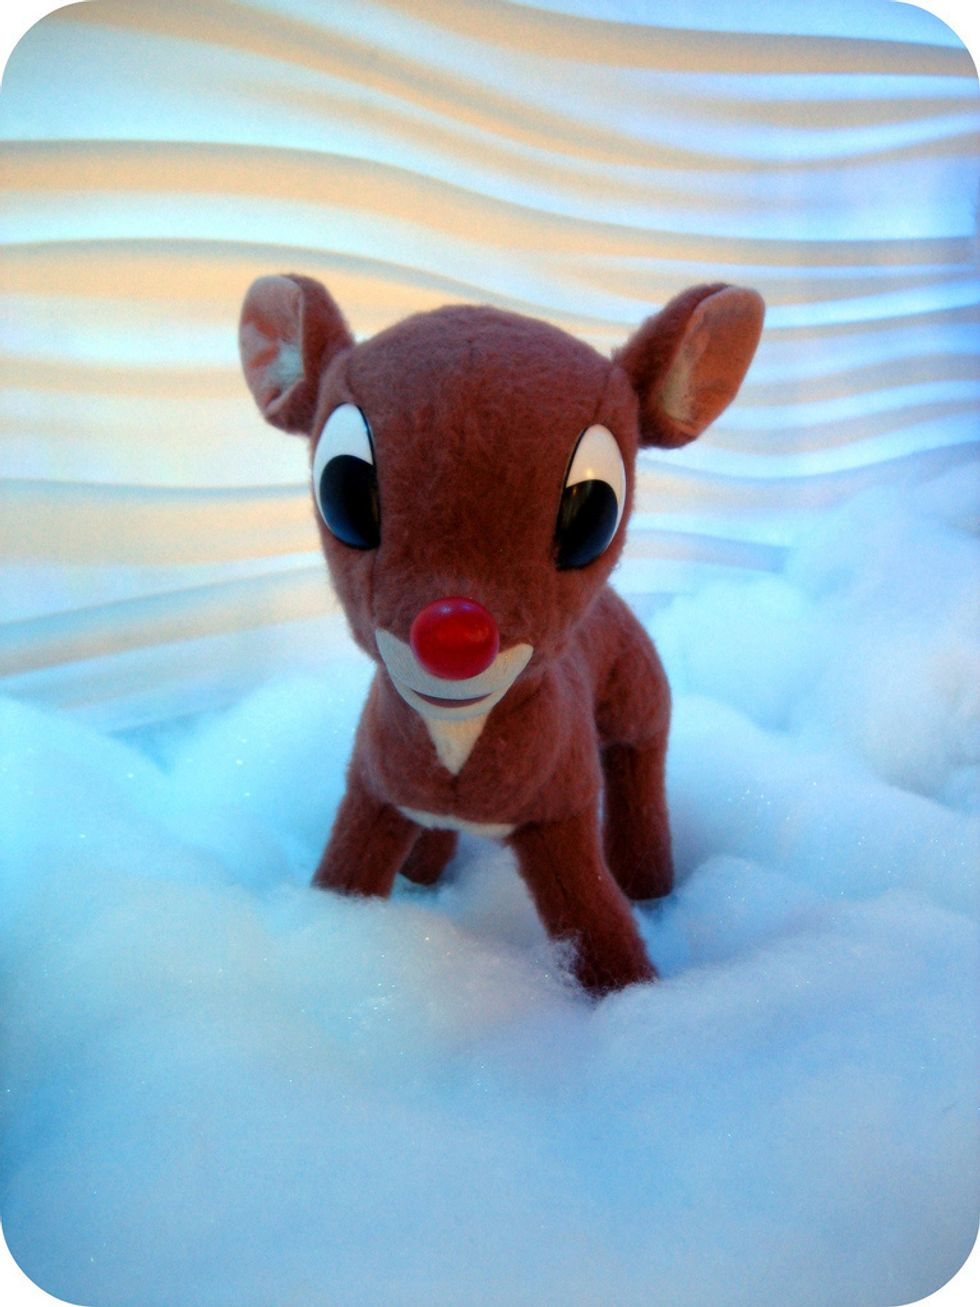 Rudolph The Problematic Reindeer?